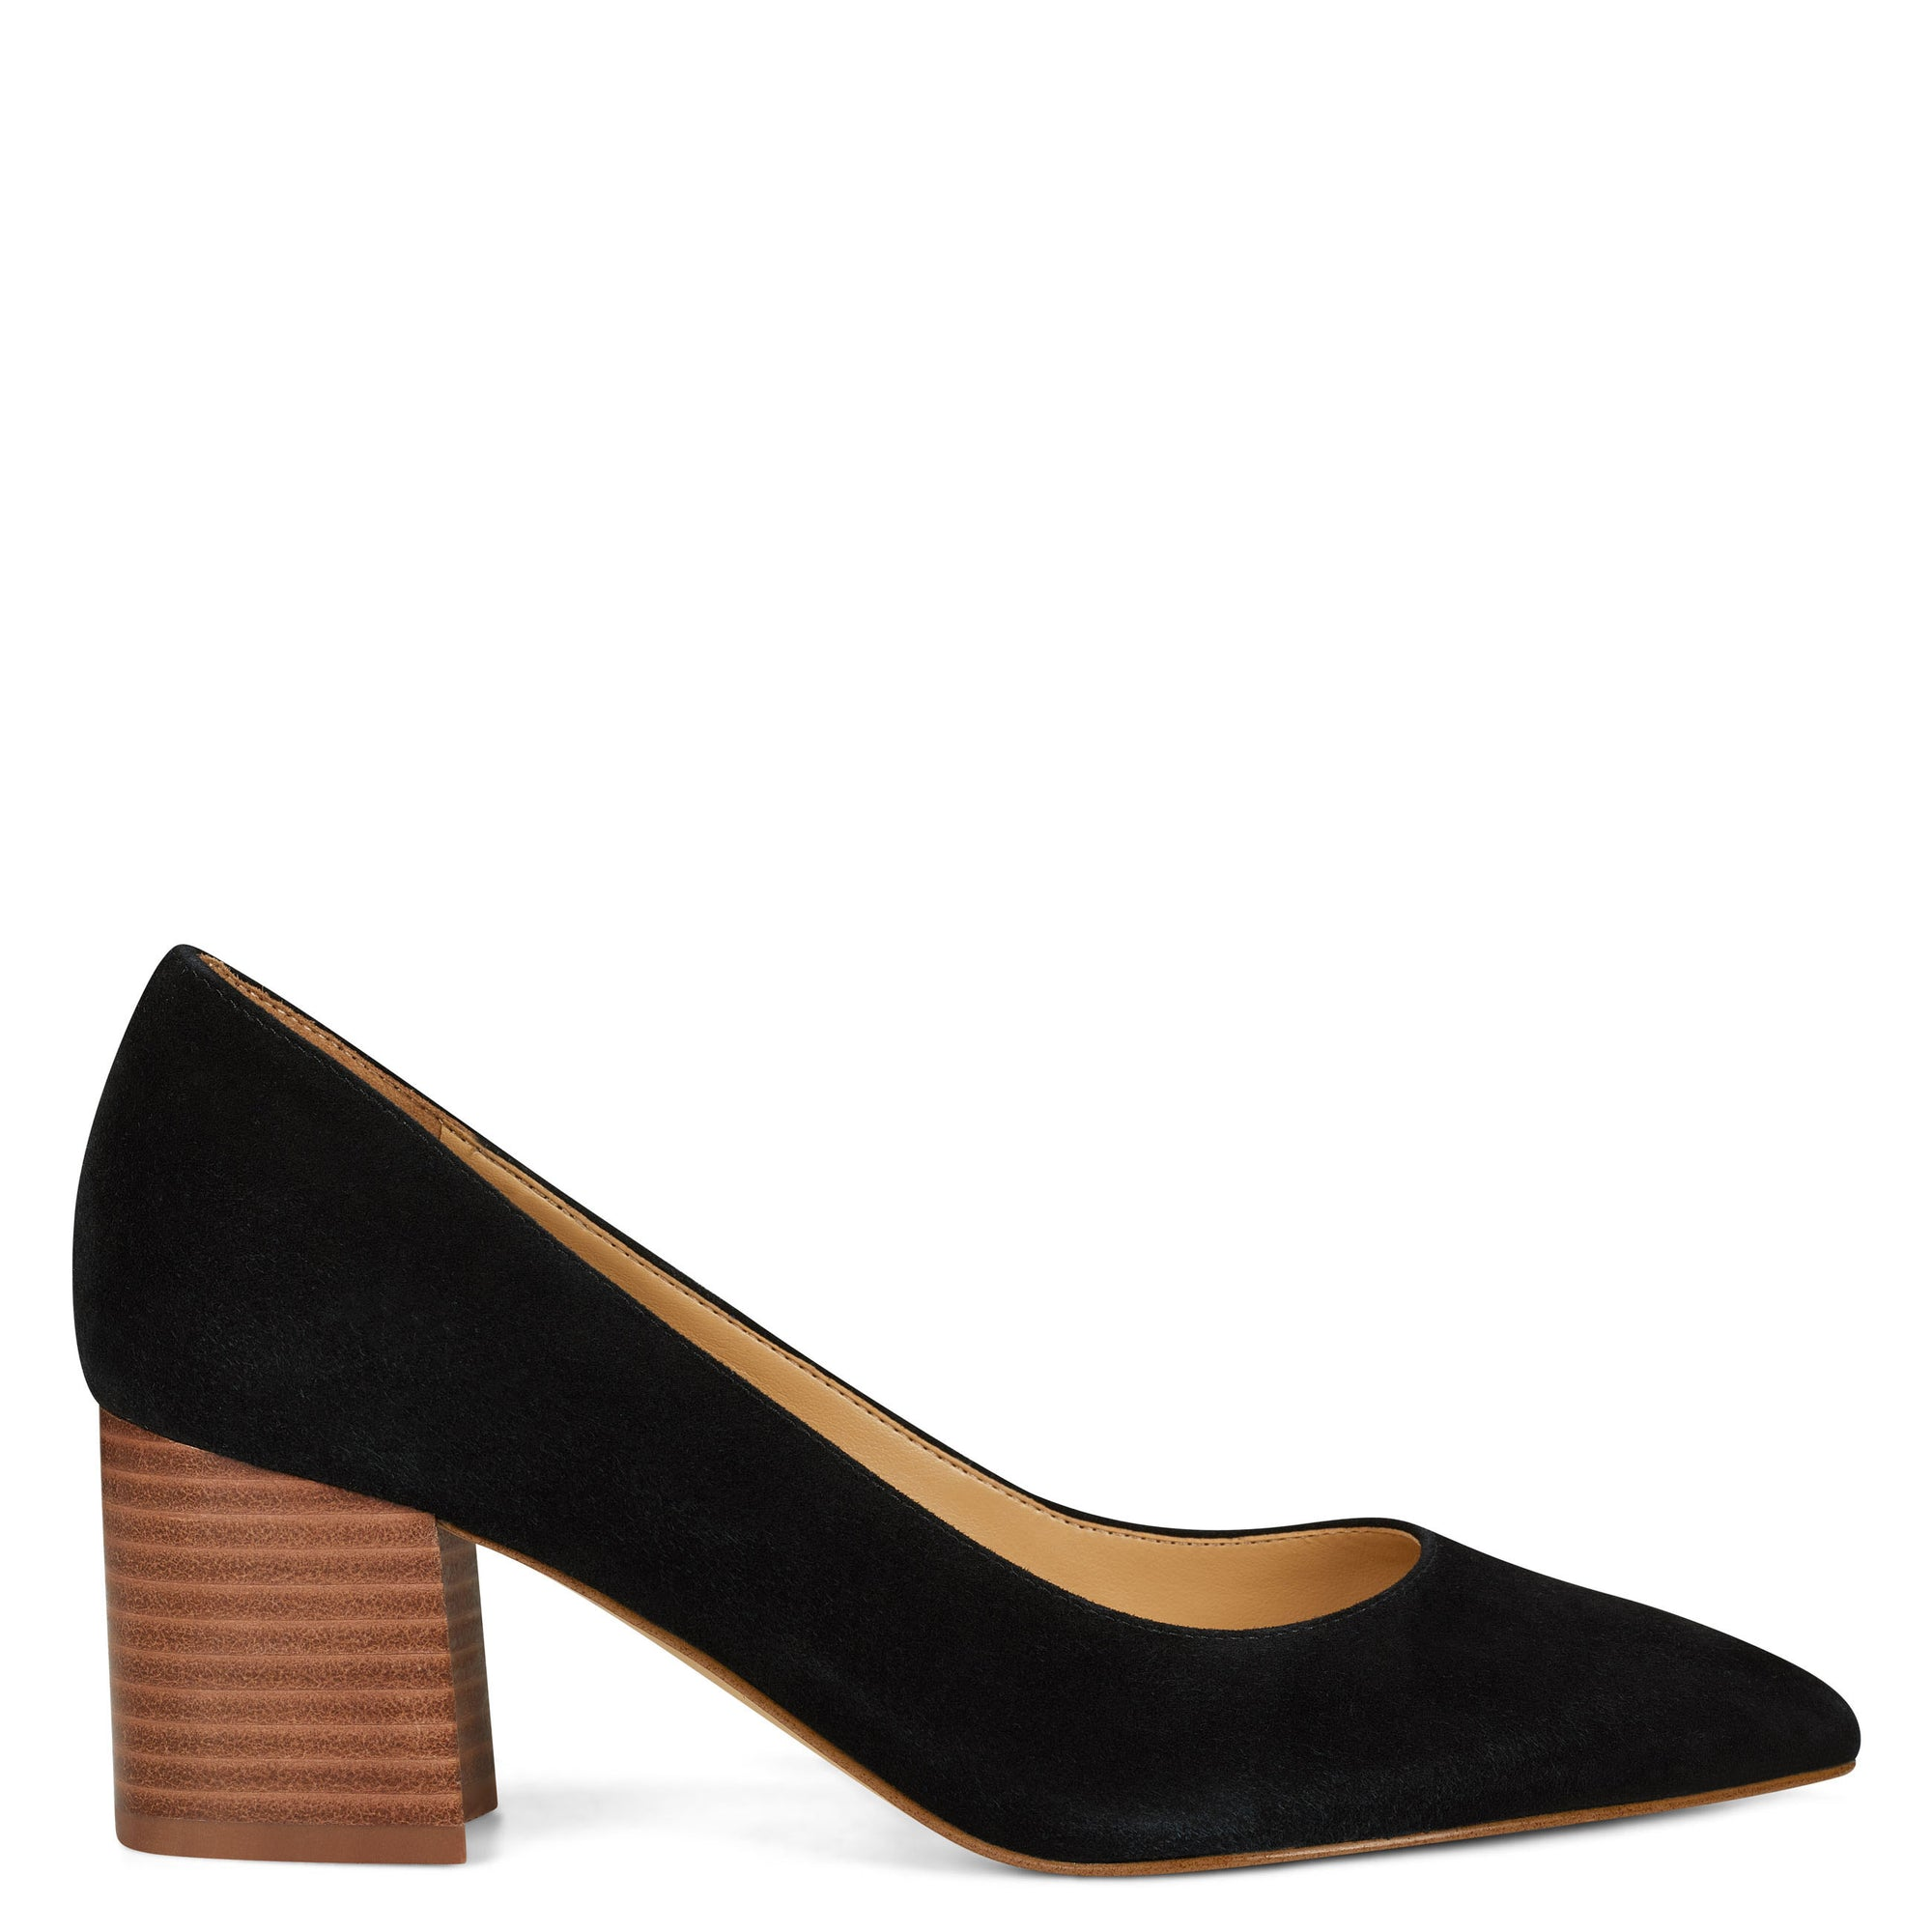 tves-dress-pumps-in-black-suede